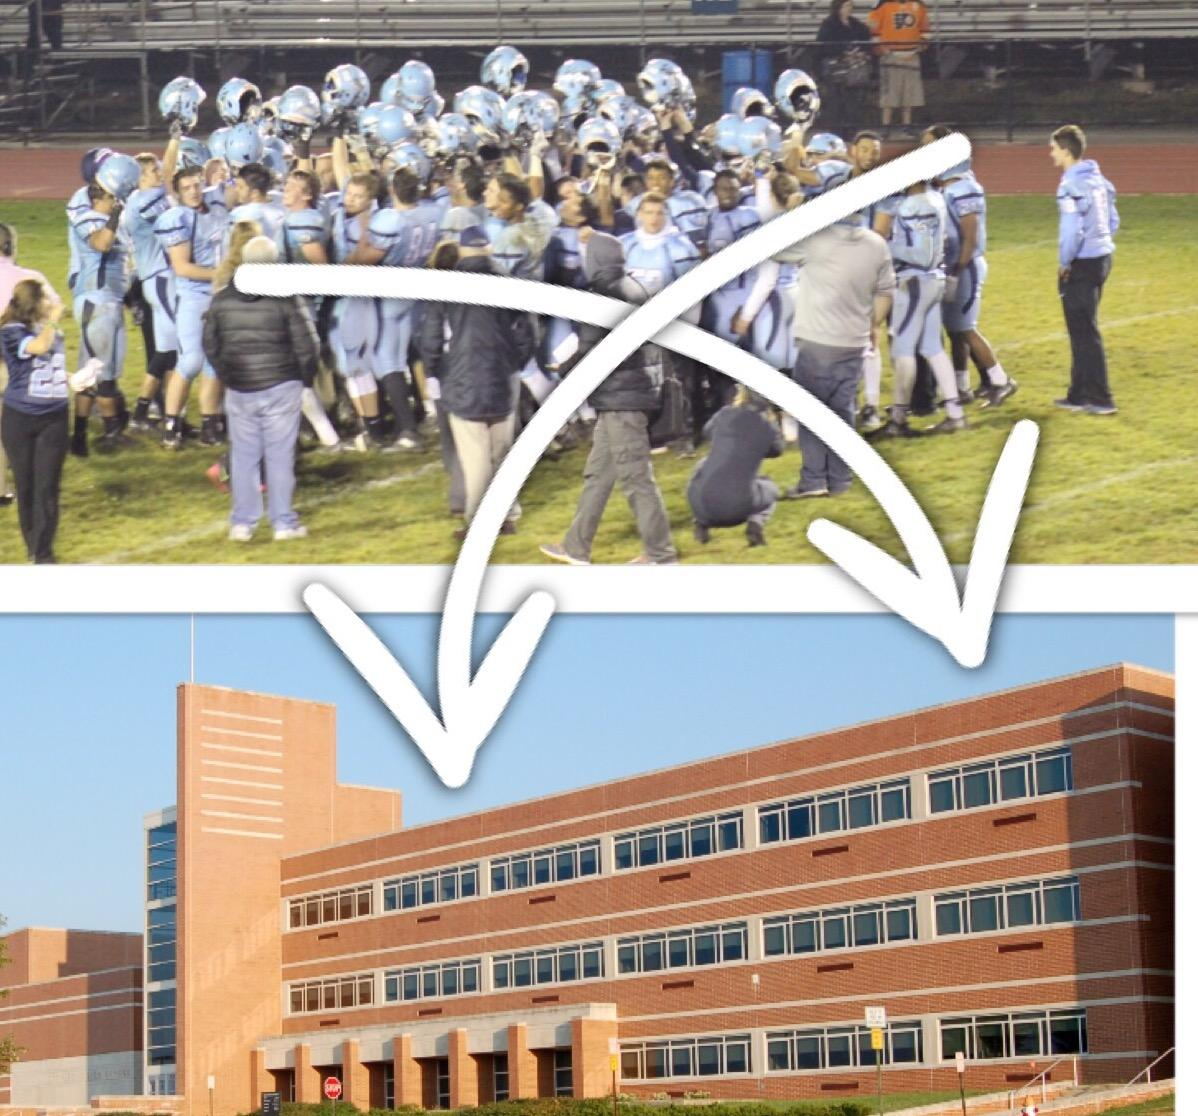 RAISIN' THE ROOF! North Penn High School has announced it will be cutting the football program and re-allocating that money for a retractable roof on the high school